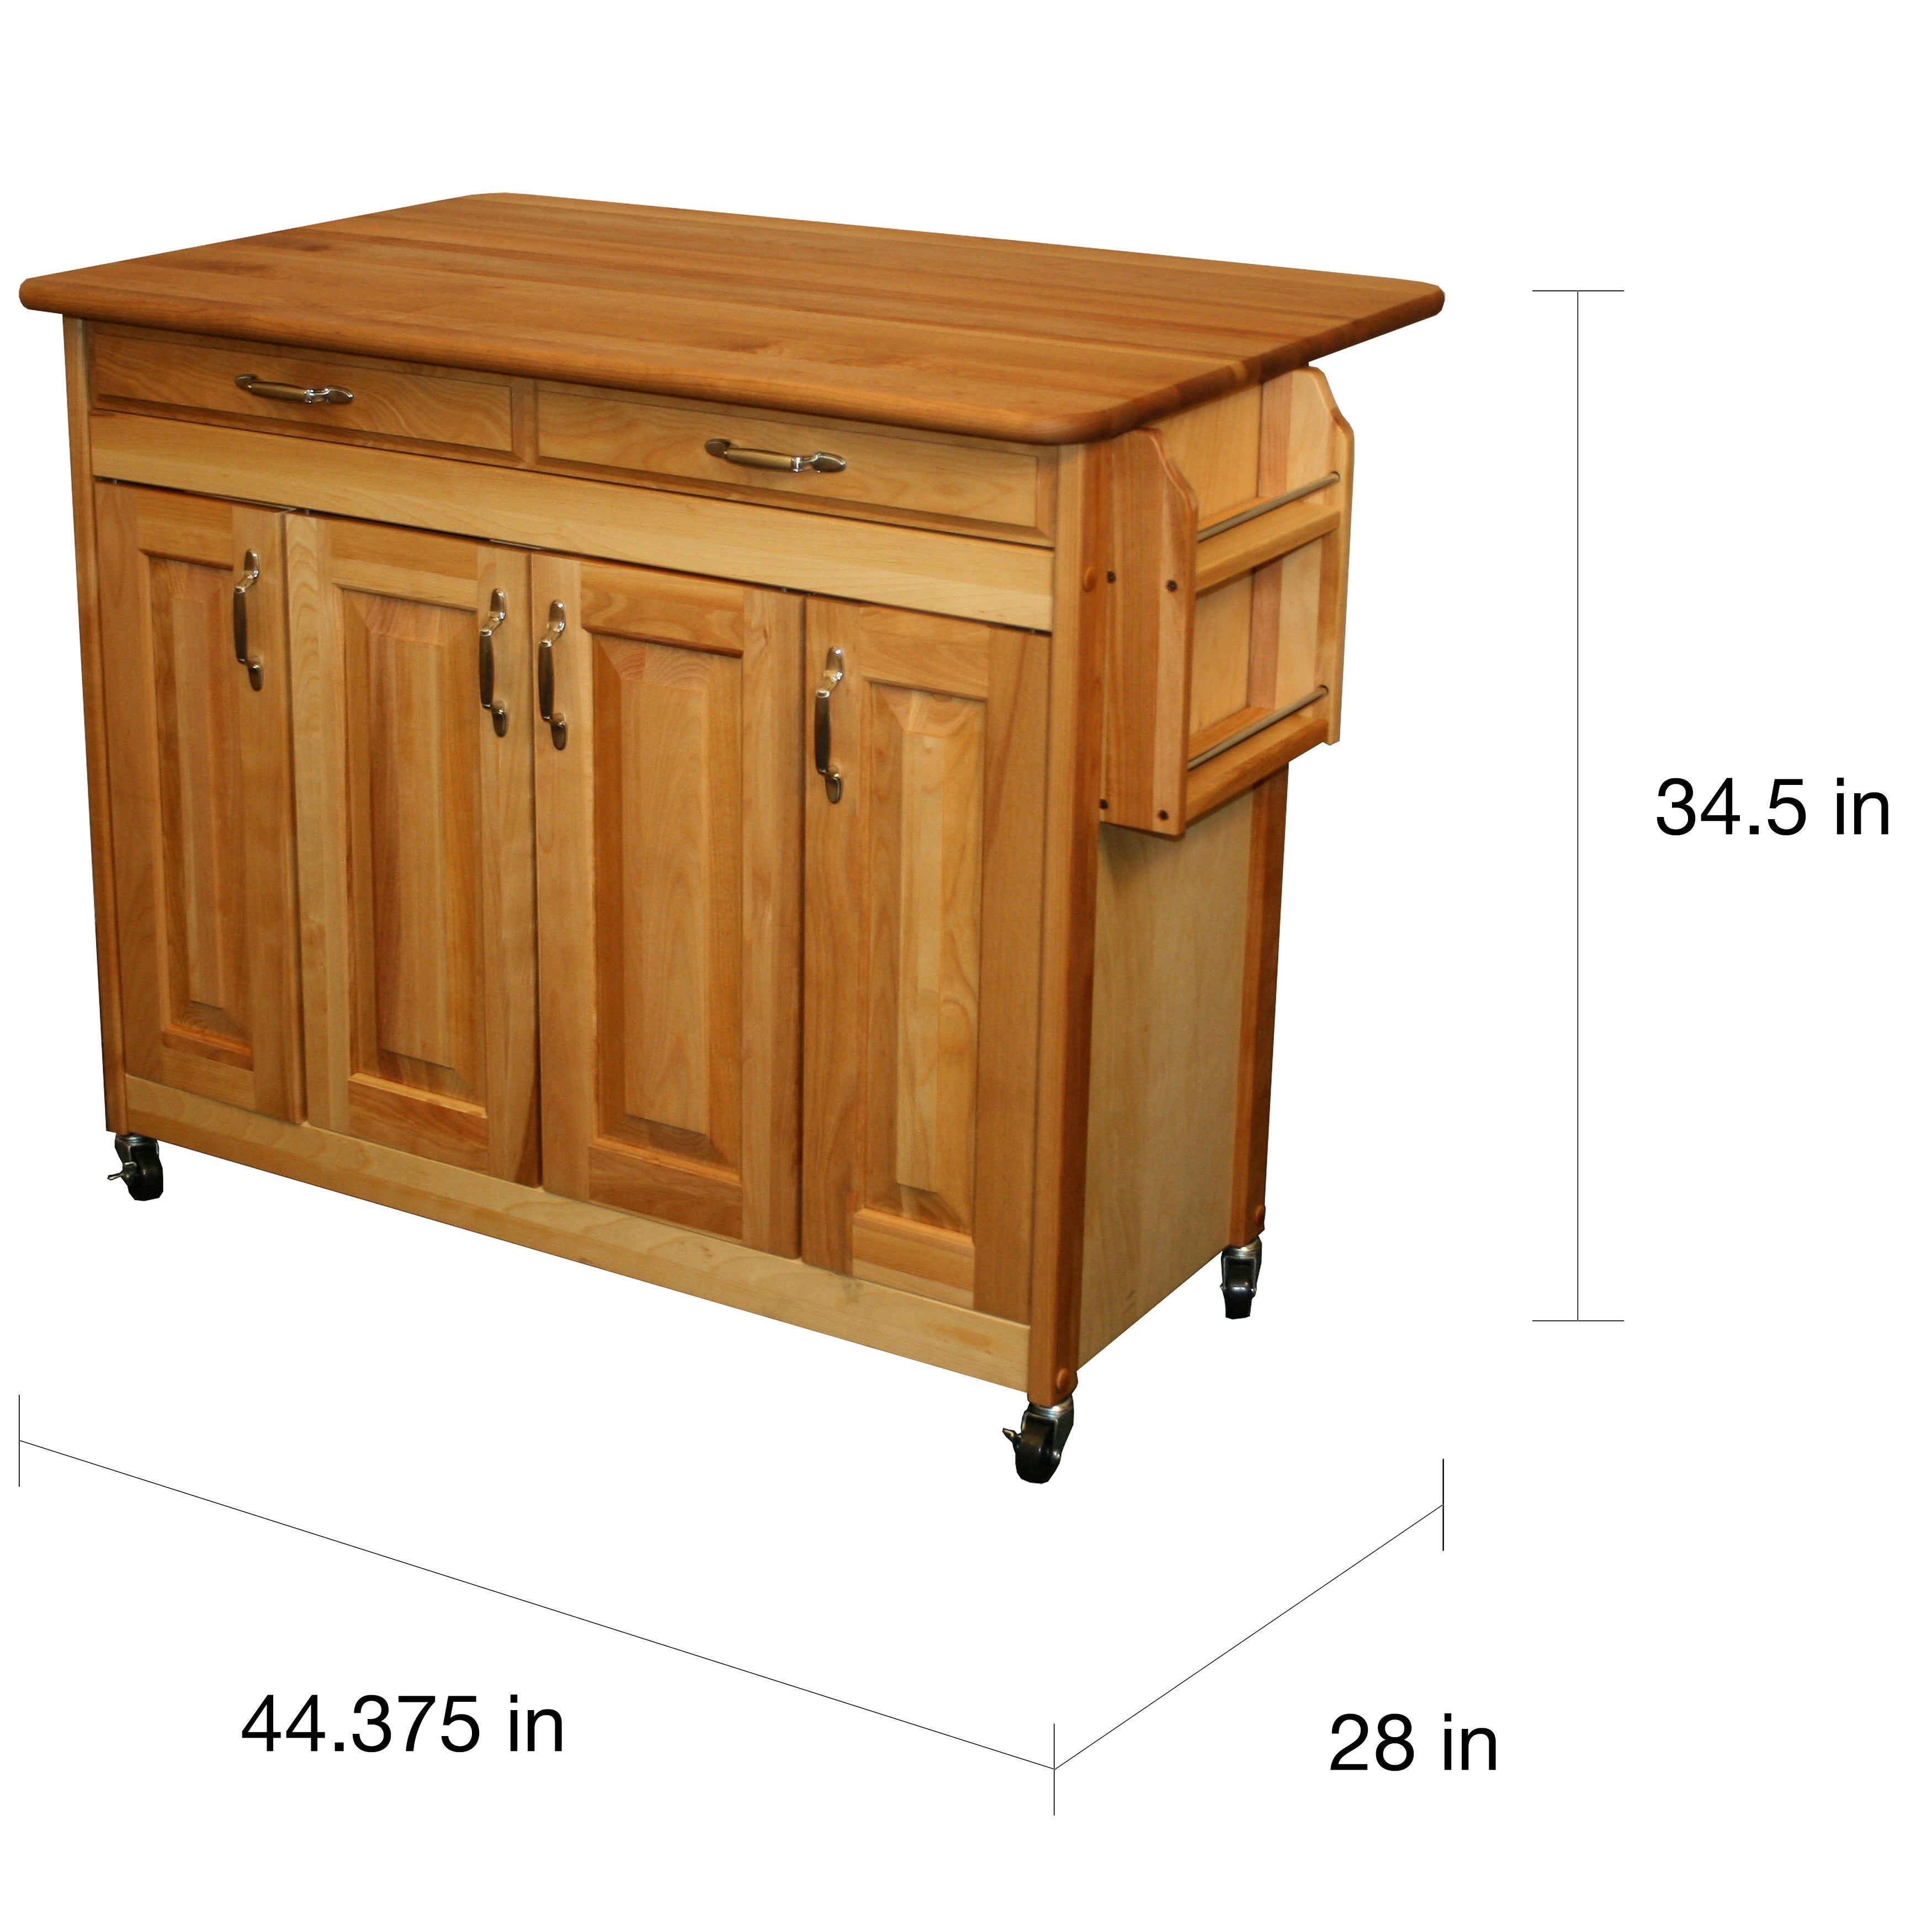 Shop catskill craftsman butcher block drop leaf kitchen island n a free shipping today overstock com 7182875